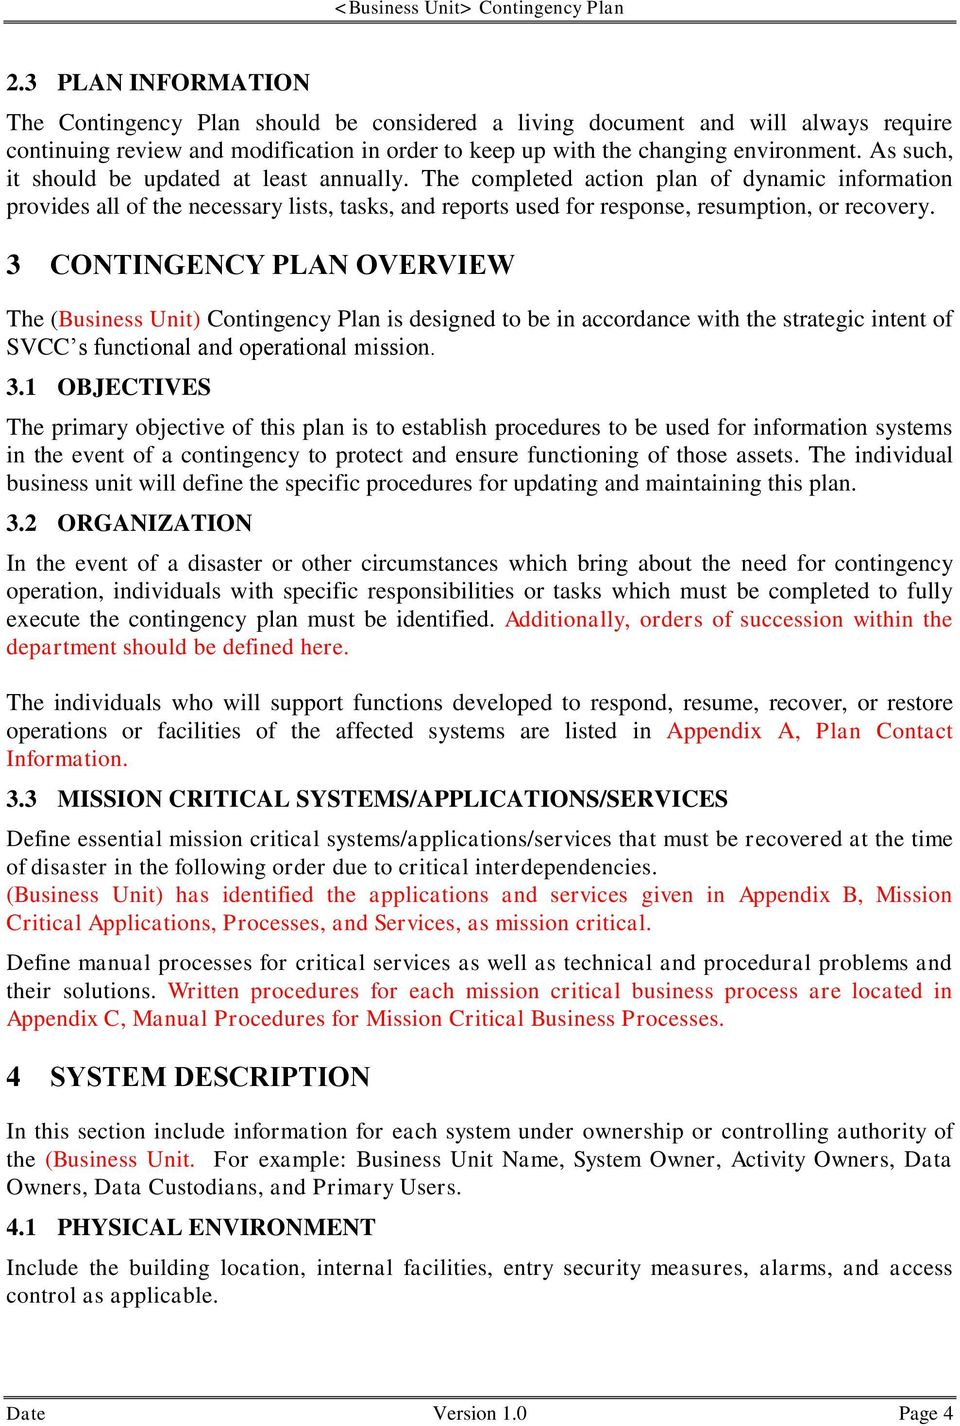 3 CONTINGENCY PLAN OVERVIEW The (Business Unit) Contingency Plan is designed to be in accordance with the strategic intent of SVCC s functional and operational mission. 3.